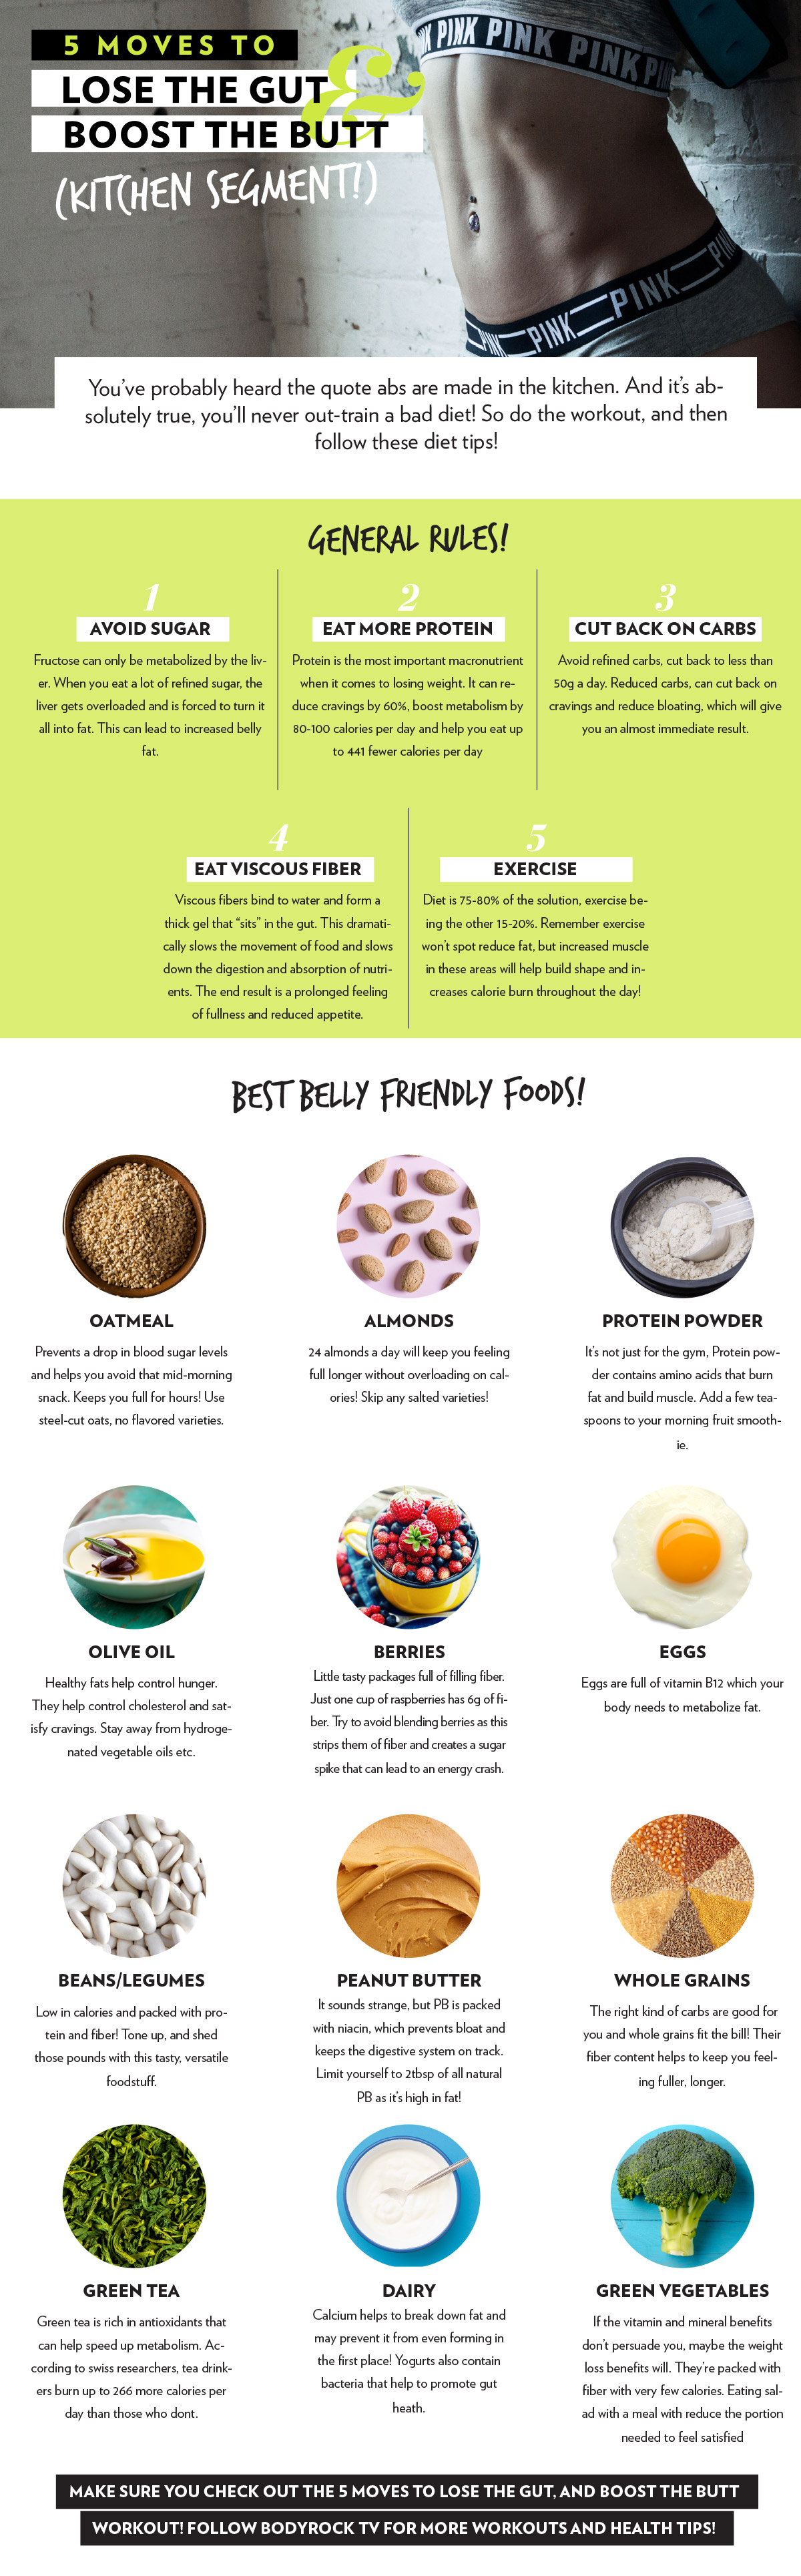 Video coming soon to BodyRock tv! In the mean-time, get ready to get those abs and boost that booty by eating right! Here are the top foods to eat for a gorgeous looking butt butt and stomach!